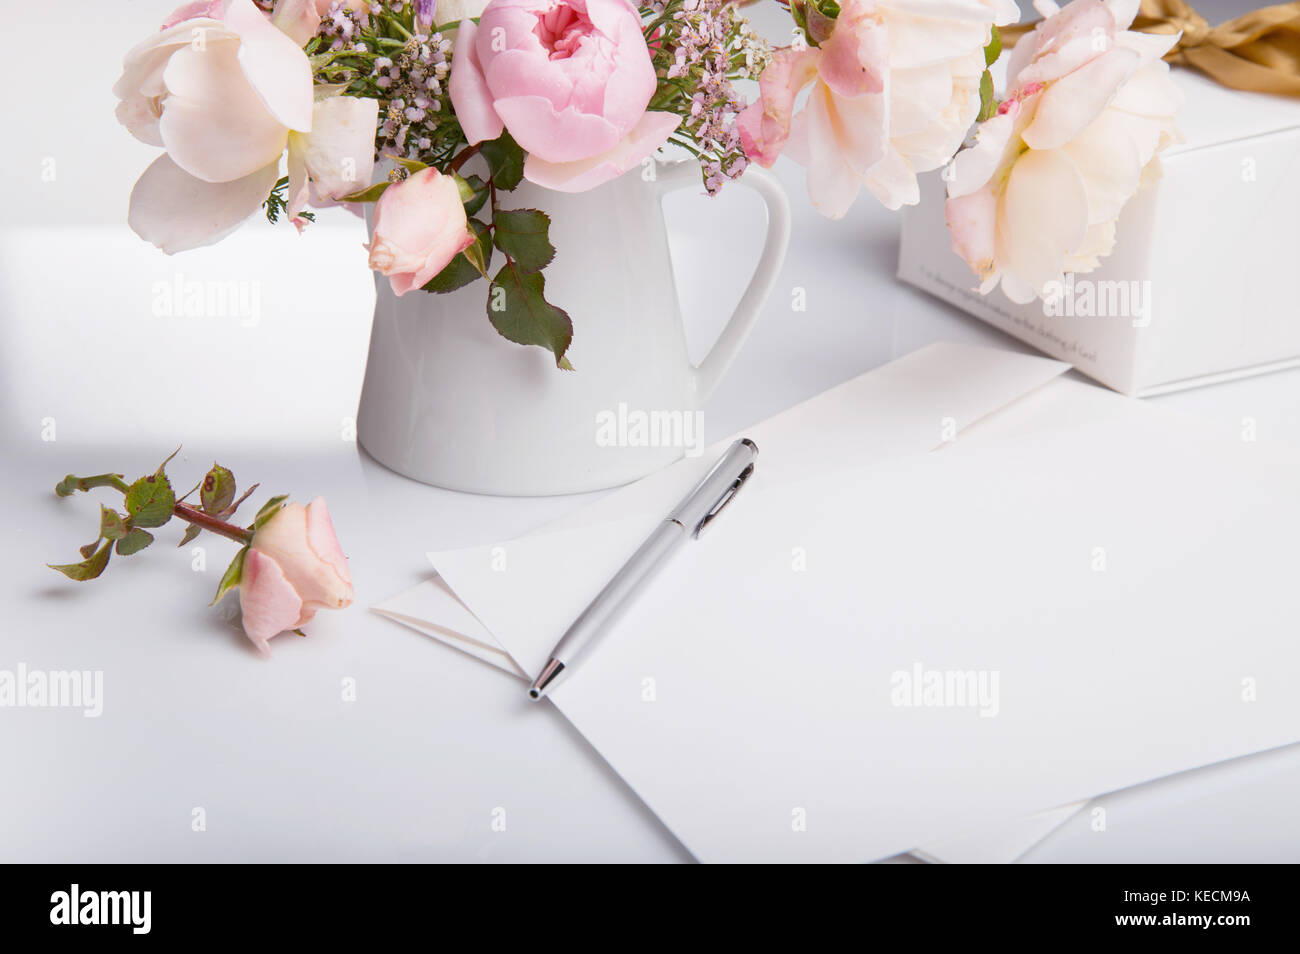 Flat lay shot of letter and white envelope on white background with pink english rose. Invitation cards or love - Stock Image